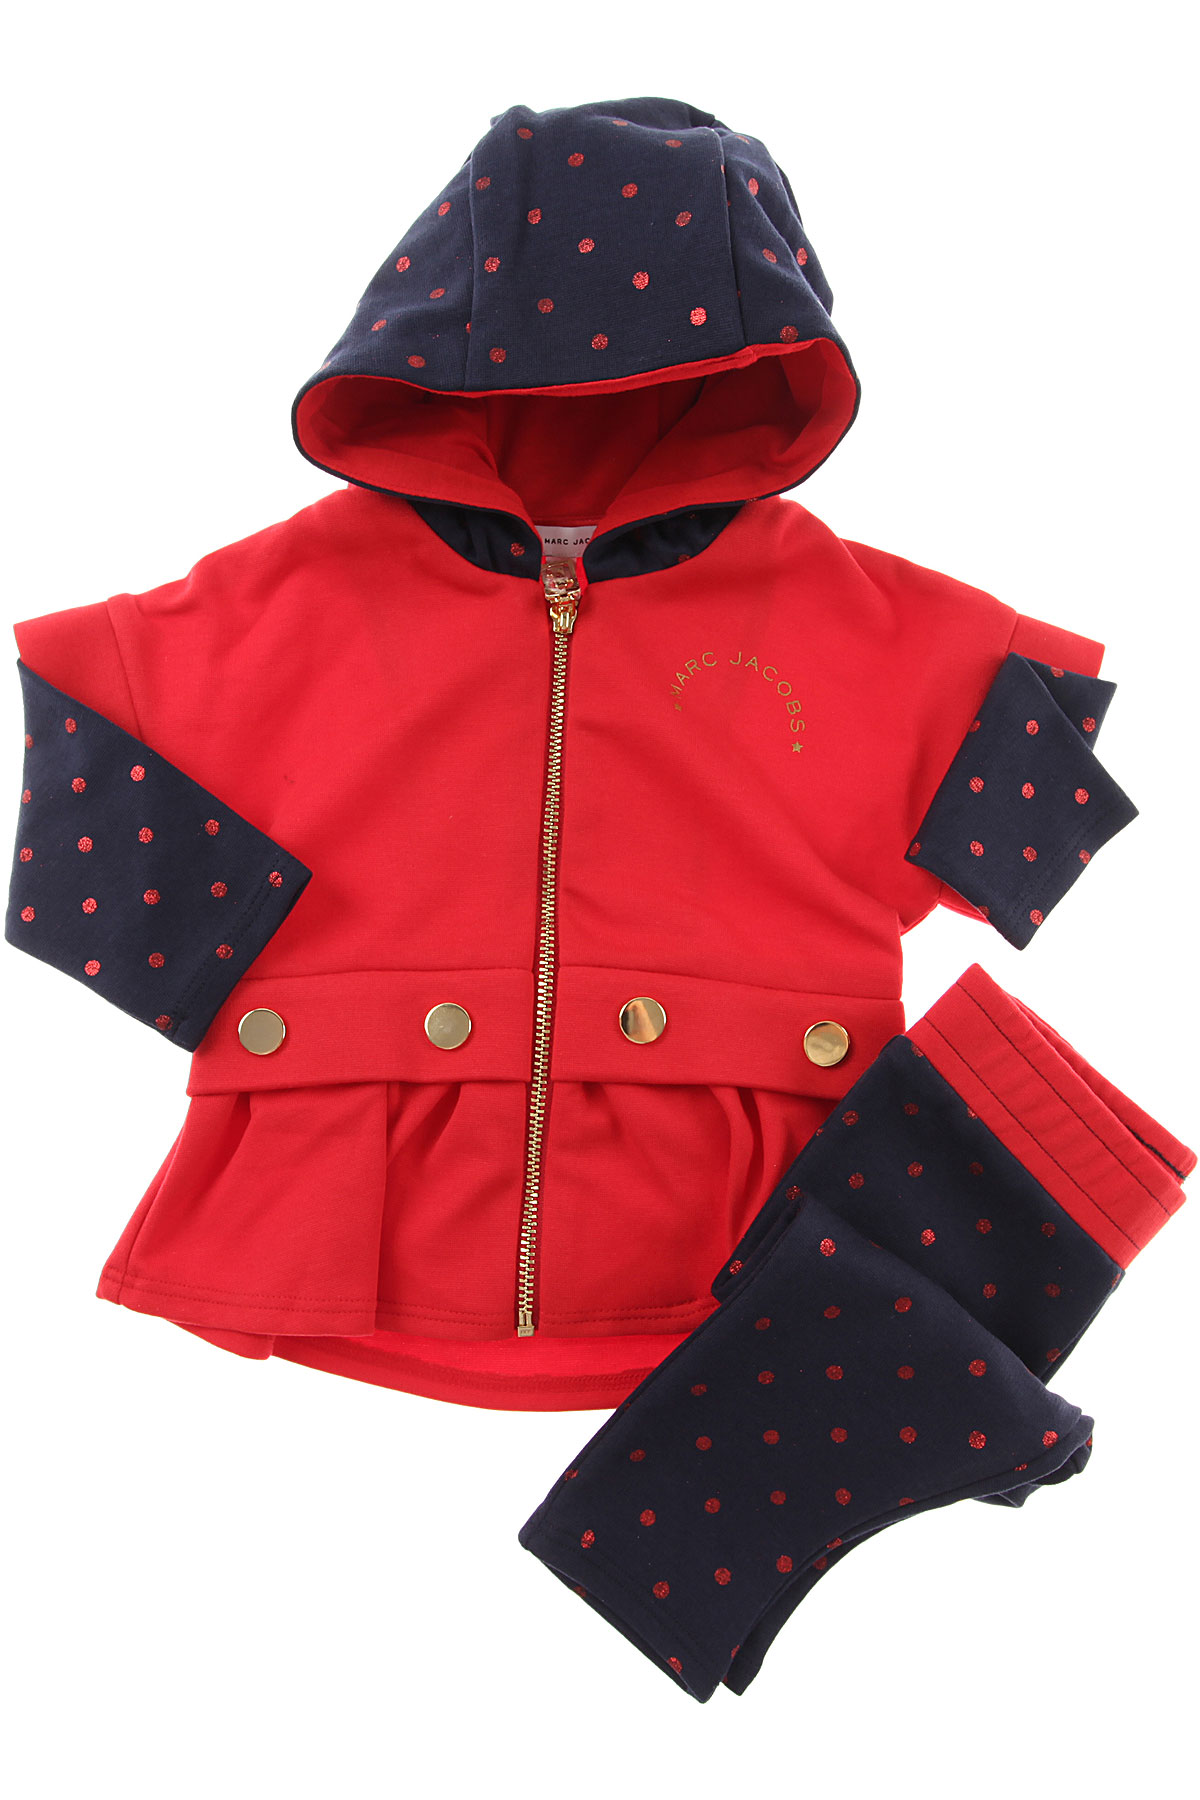 Image of Marc Jacobs Baby Sets for Girls, Red, Cotton, 2017, 12M 18M 2Y 3Y 6M 9M